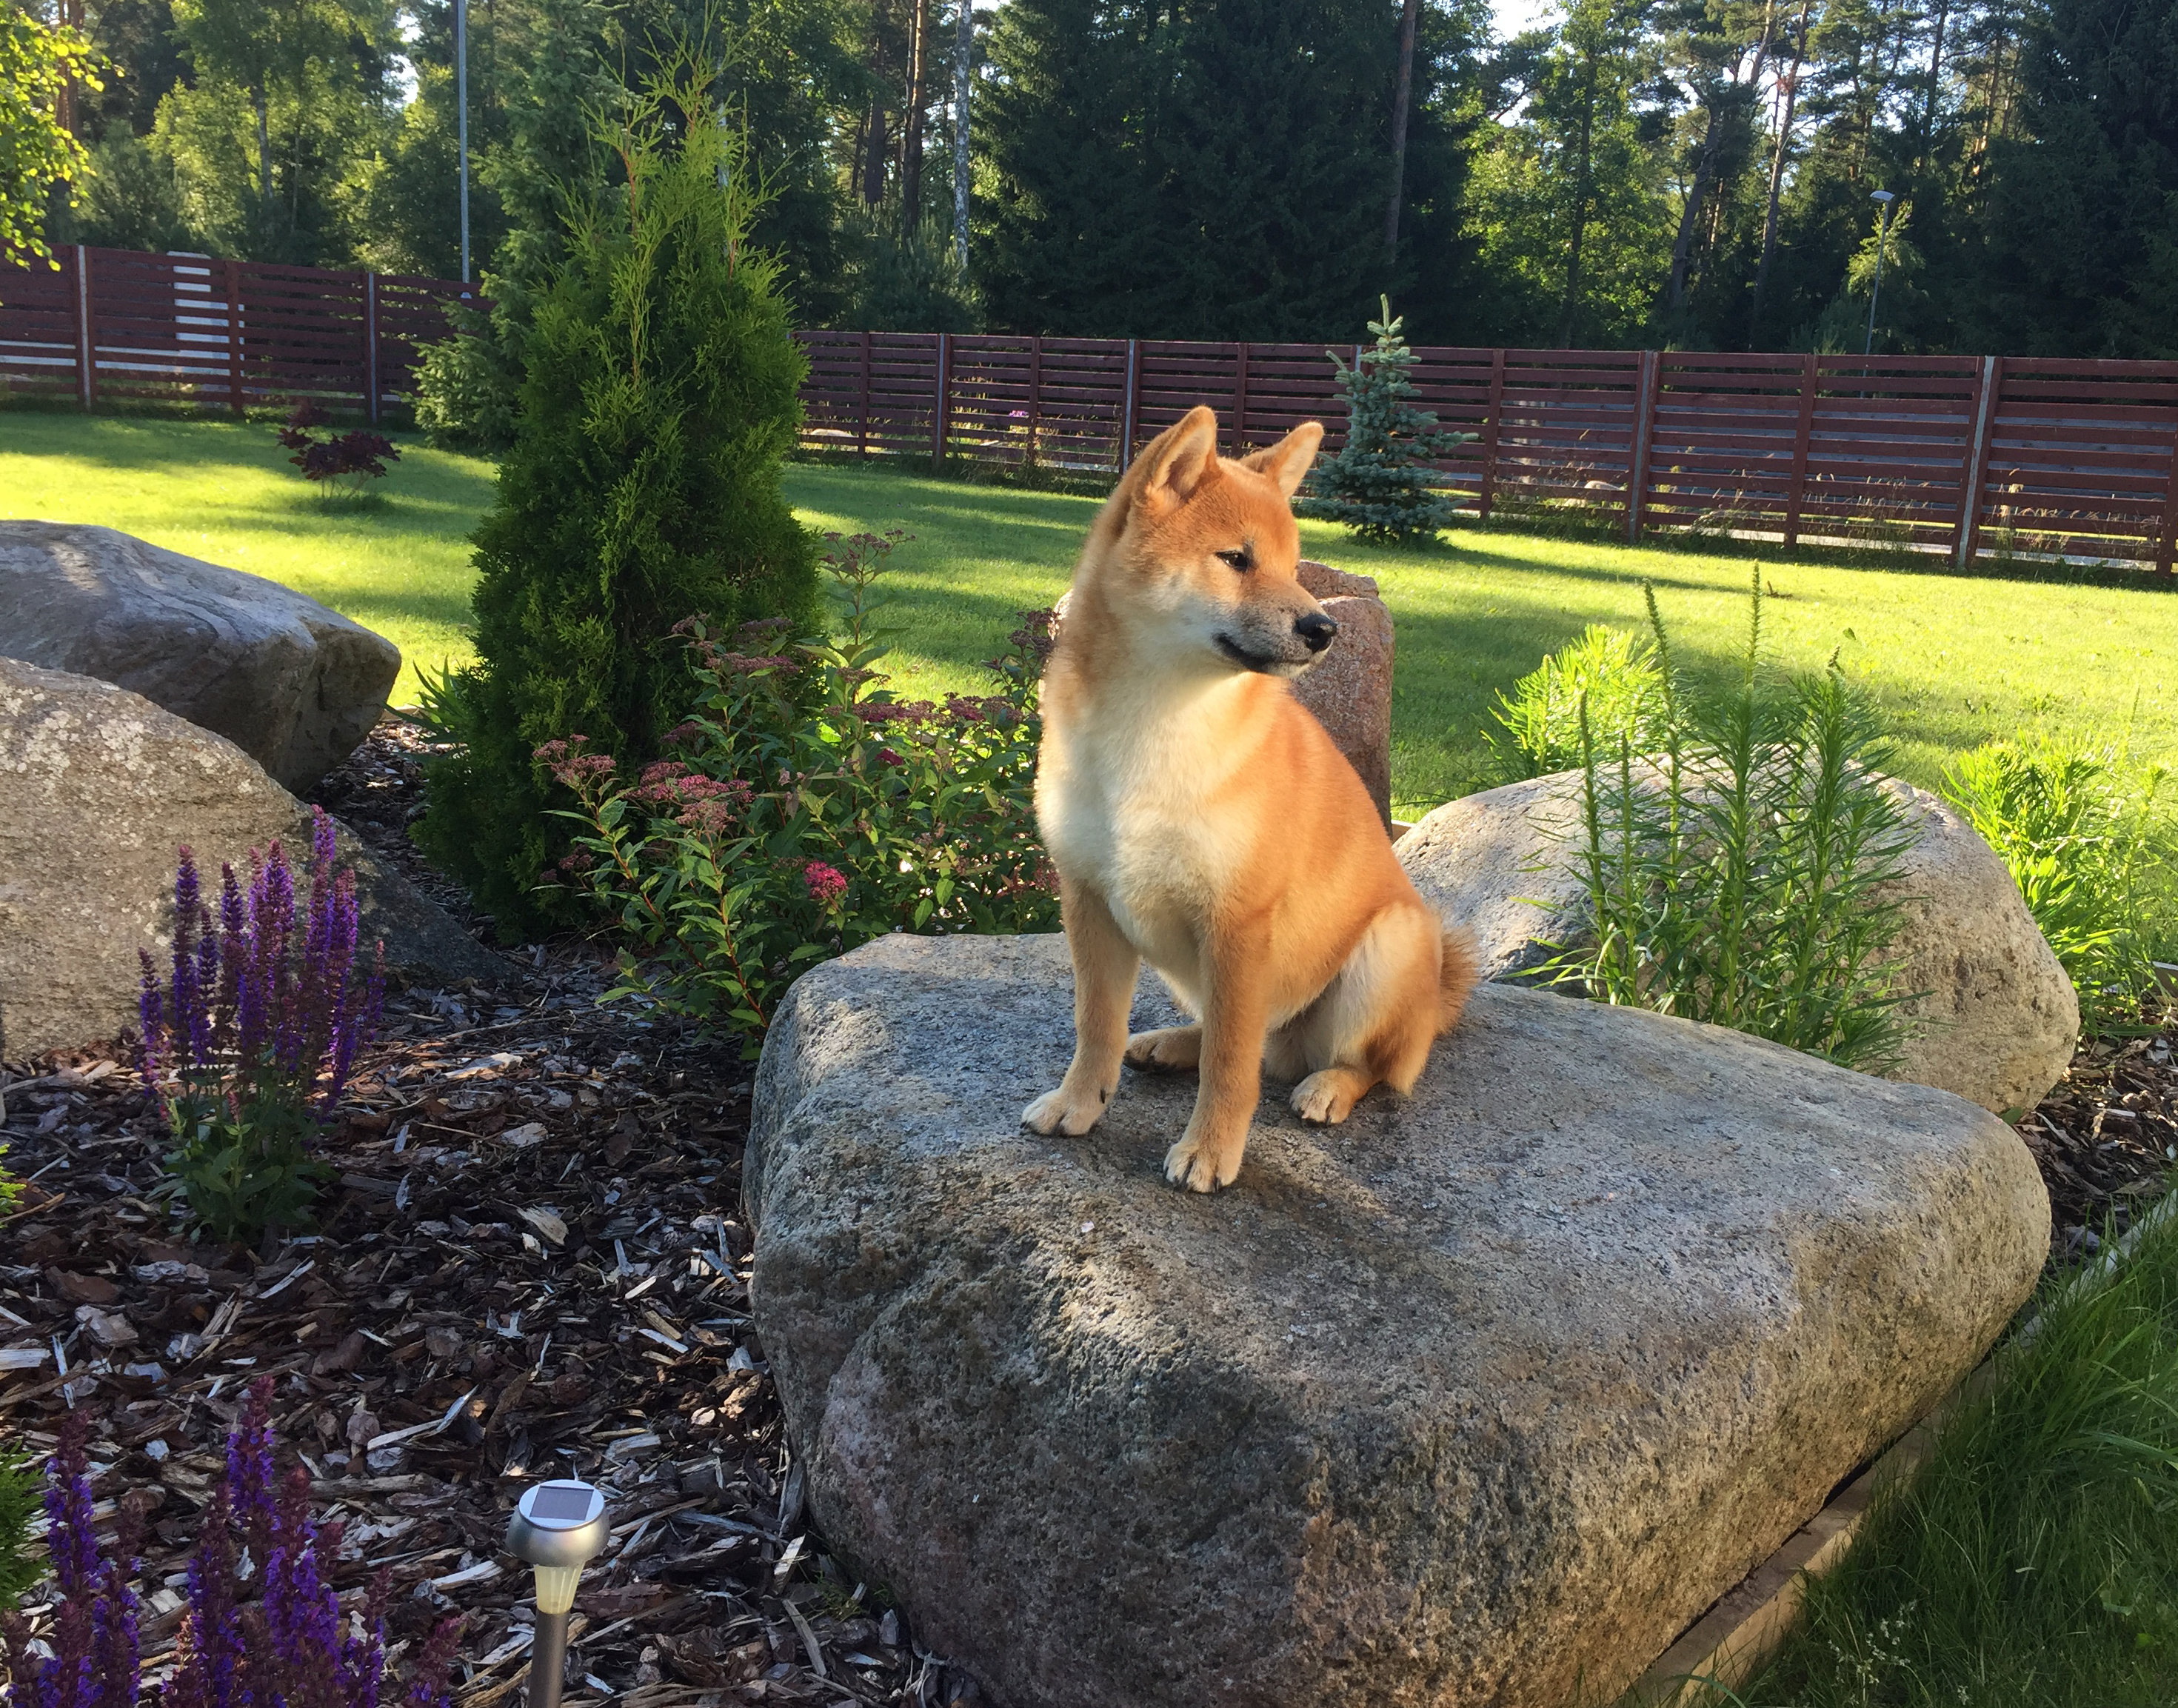 Toshi on the stone, July 2017